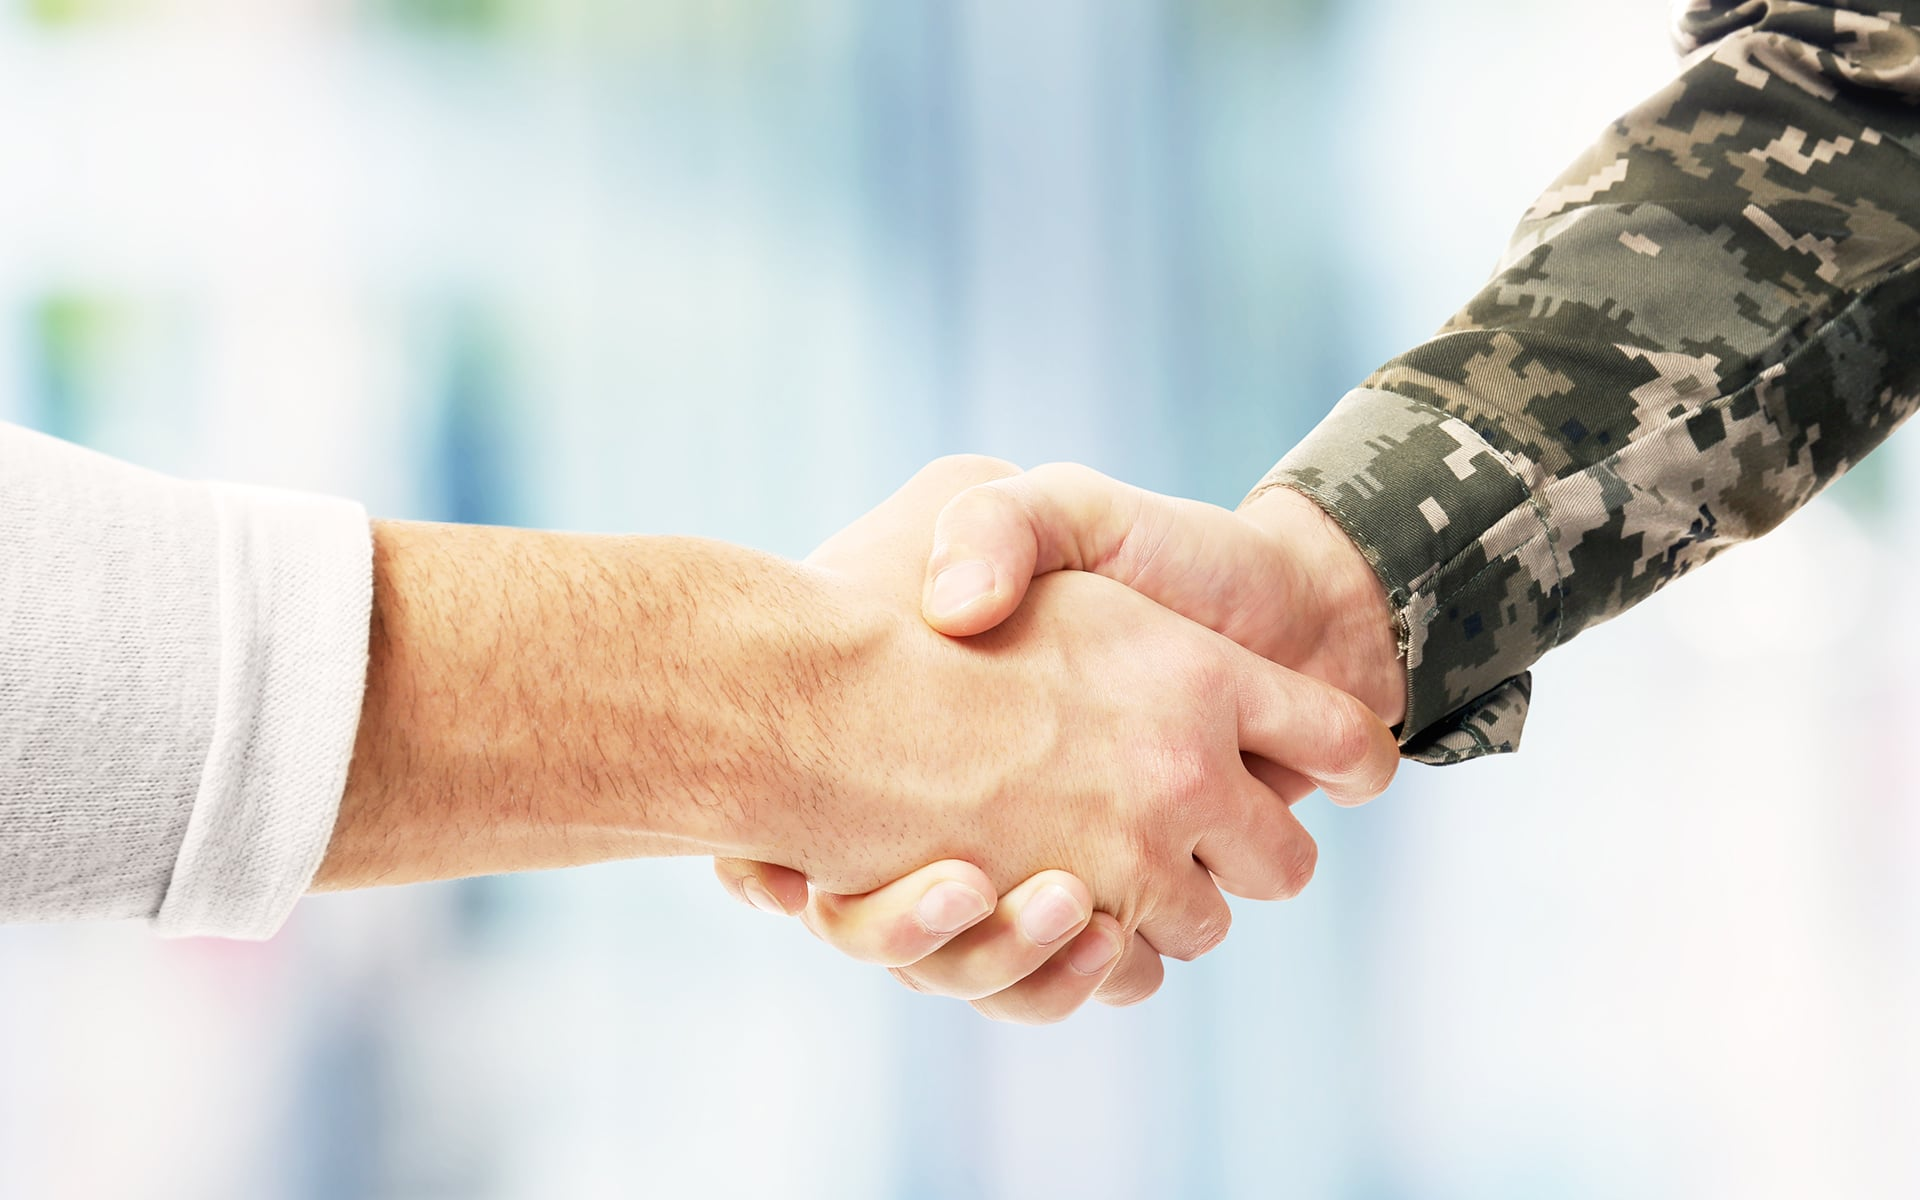 Closeup of two shaking hands, one belonging to a Veteran.